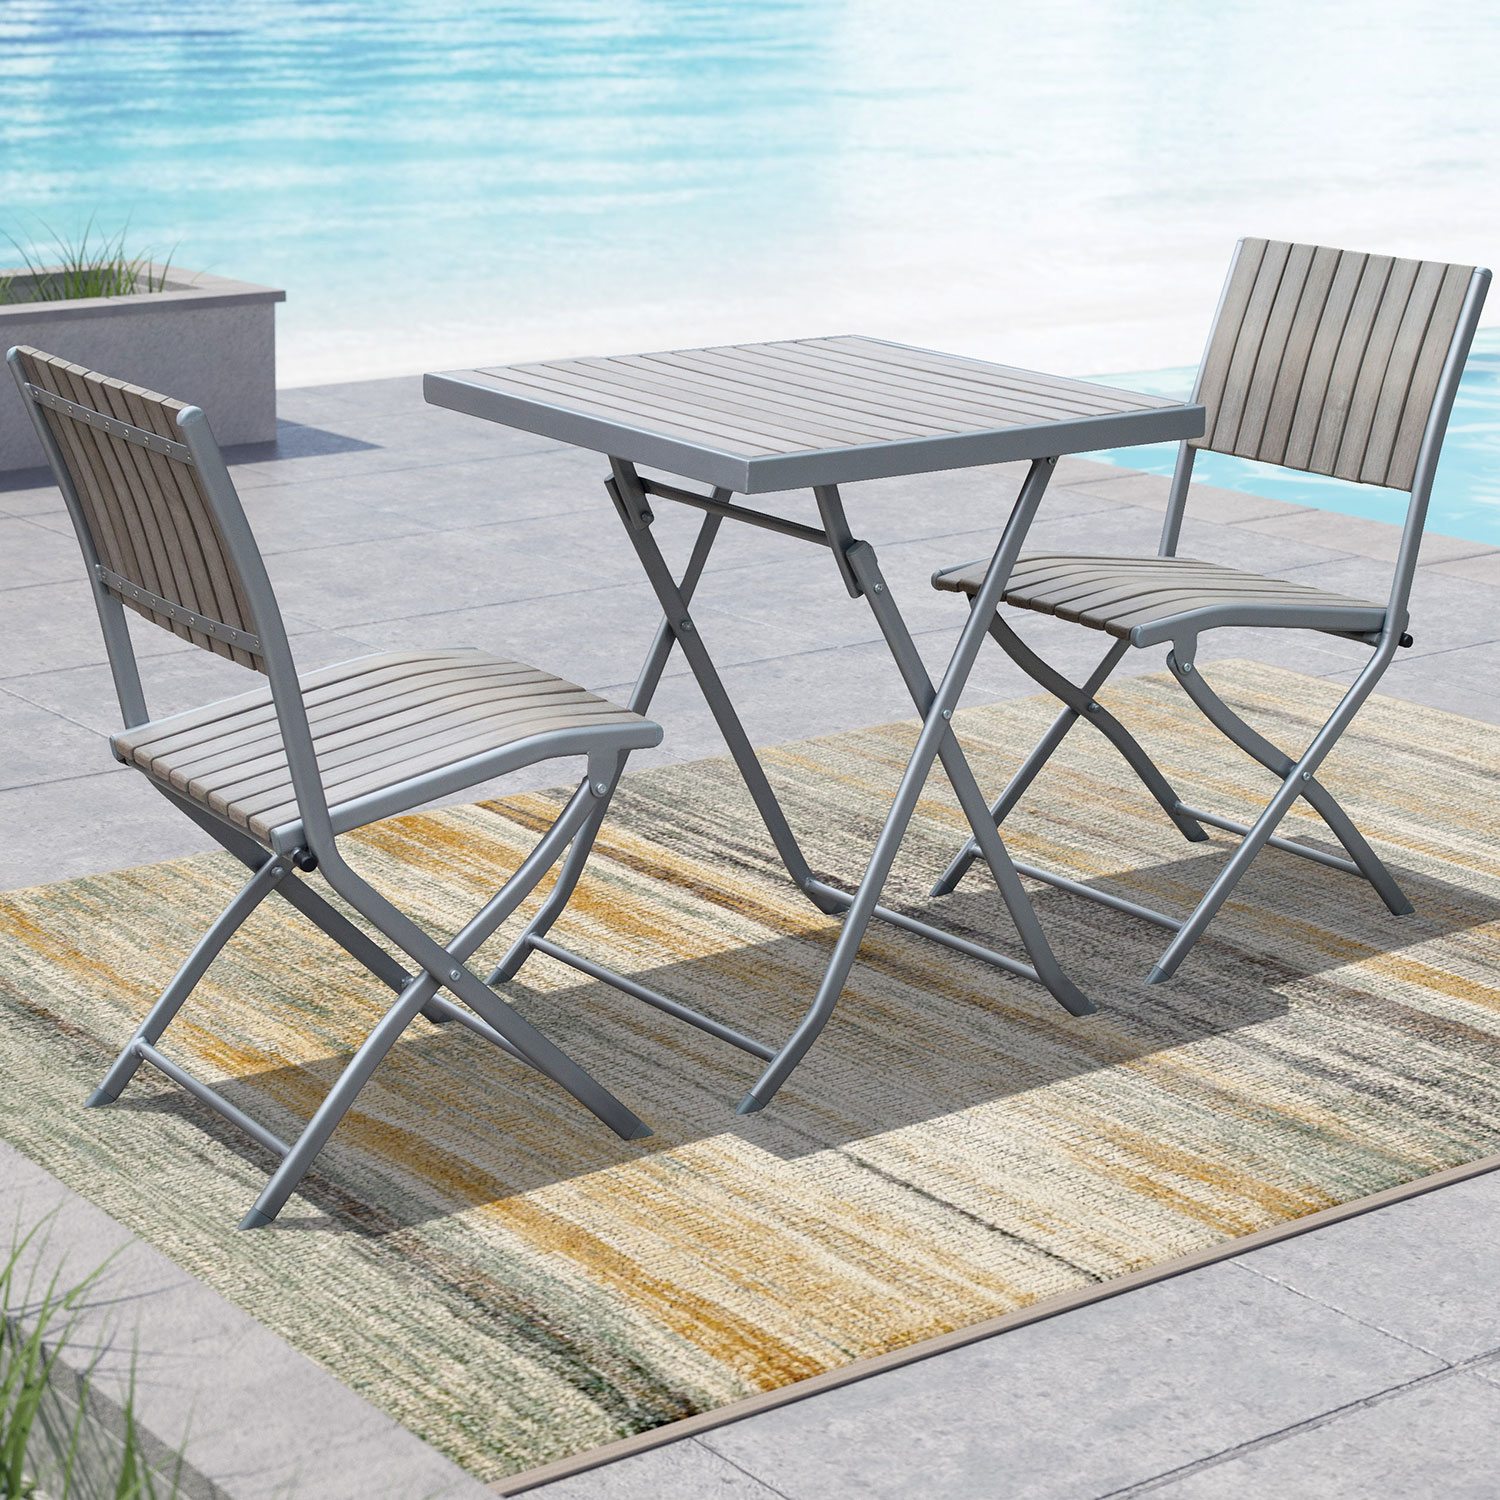 Gallant contemporary 3 piece folding bistro set sun bleached grey online only